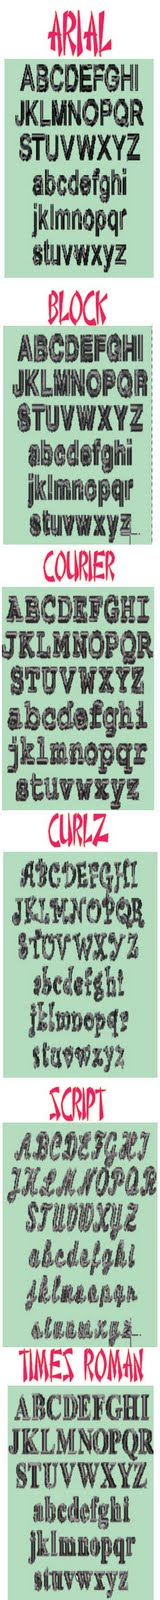 Embroidery Font Choices